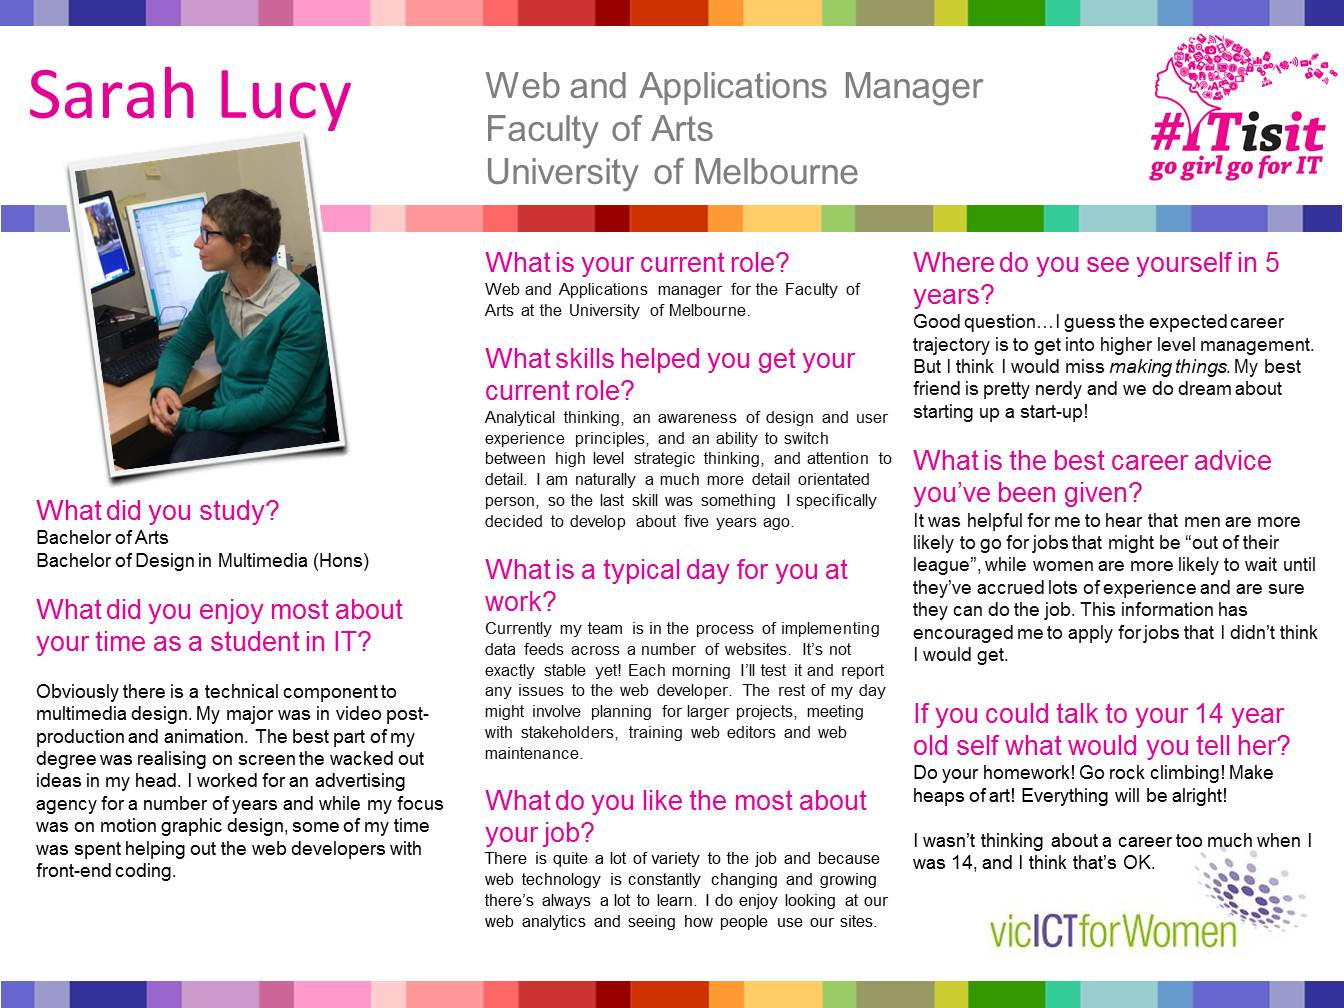 Sarah Lucy, Web & Applications Manager